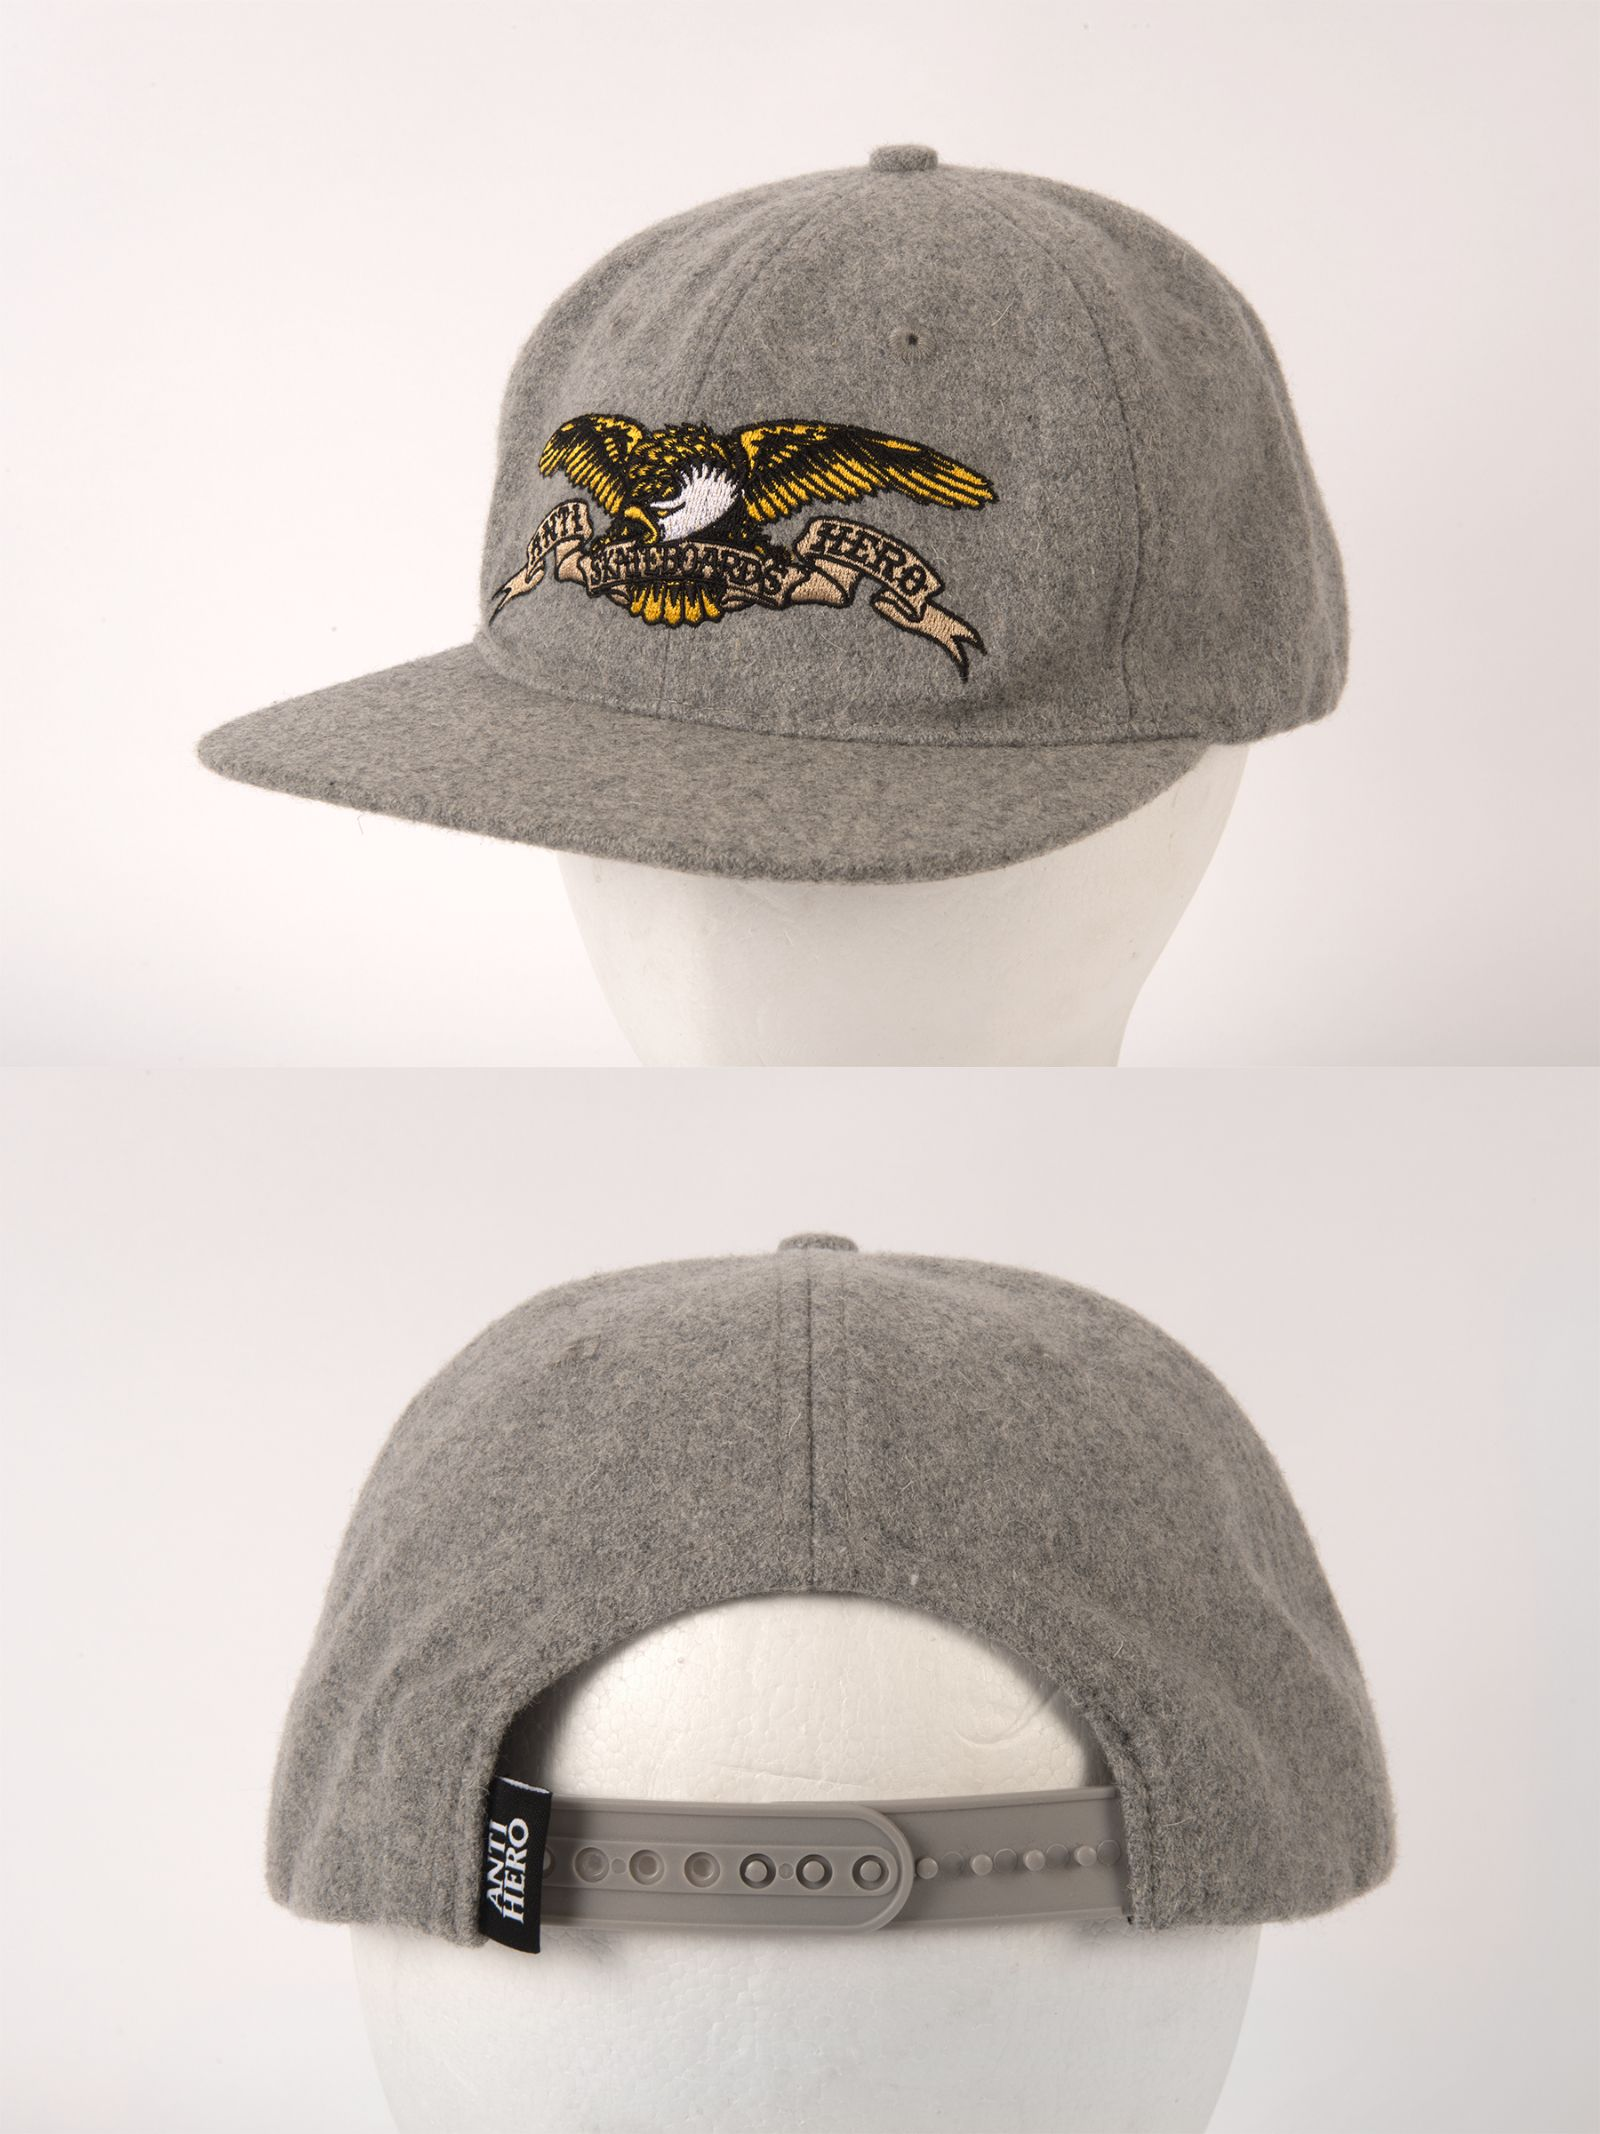 9a03bfadf489d Hats and Headwear 159078  Nike Shoes Skull Action Trucker 6.0 Surf Skate  Sneakerhead Snapback Cap Hat New -  BUY IT NOW ONLY   35 on eBay!